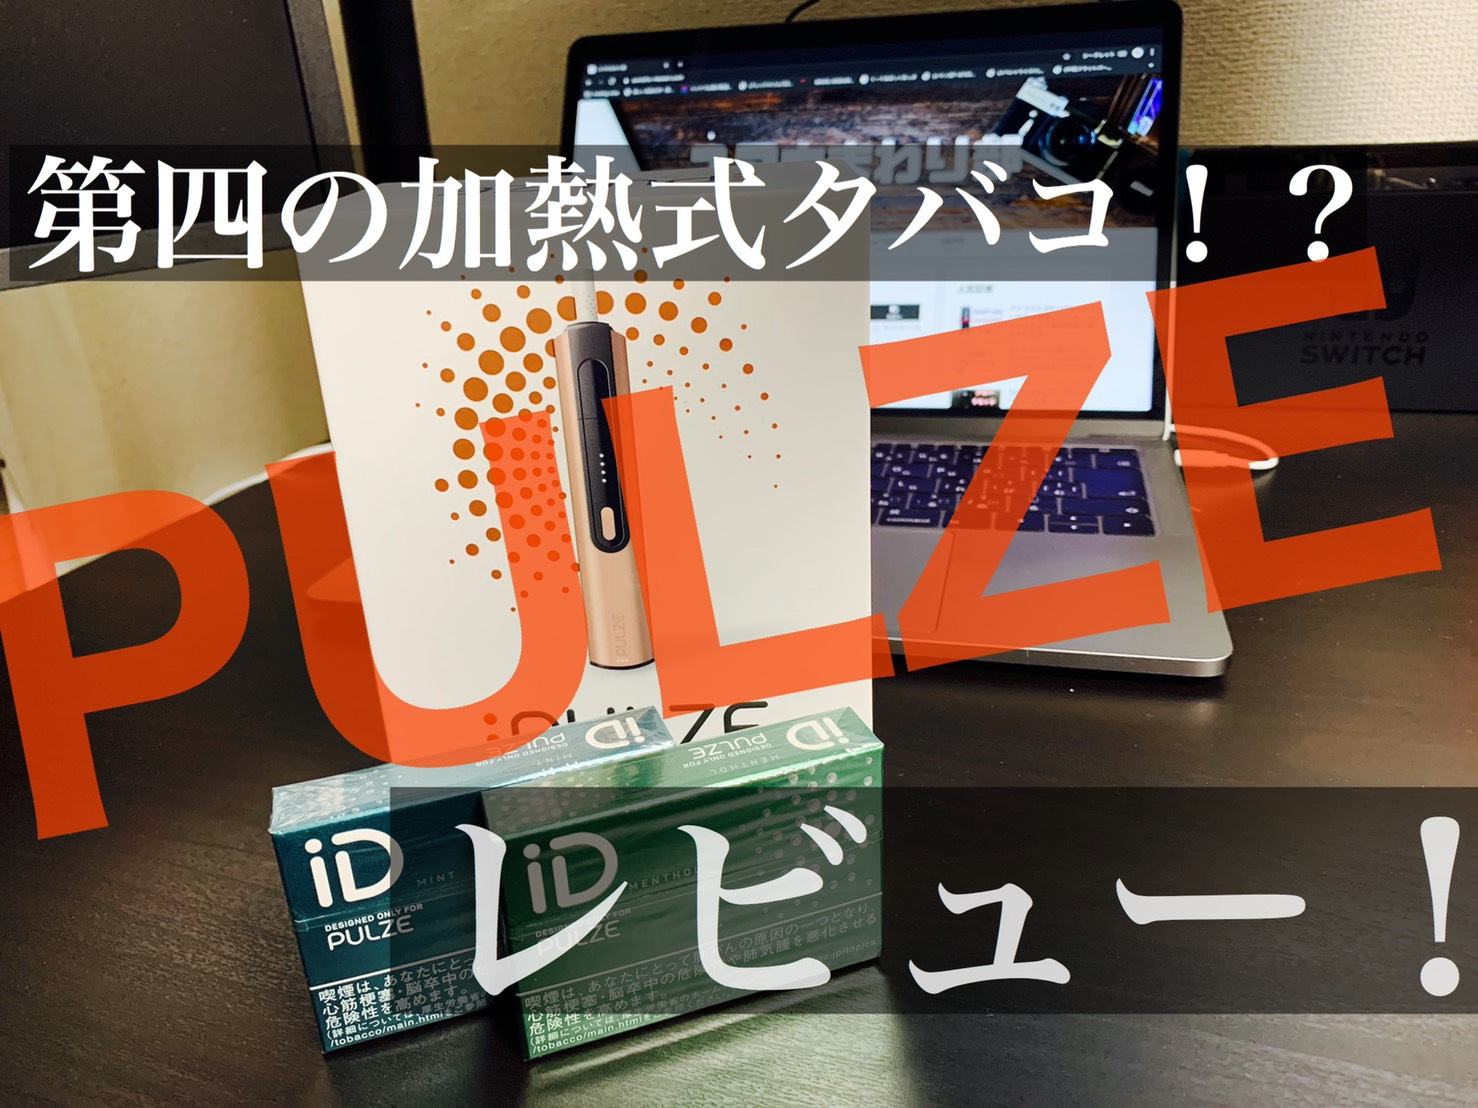 pulze review eye catch